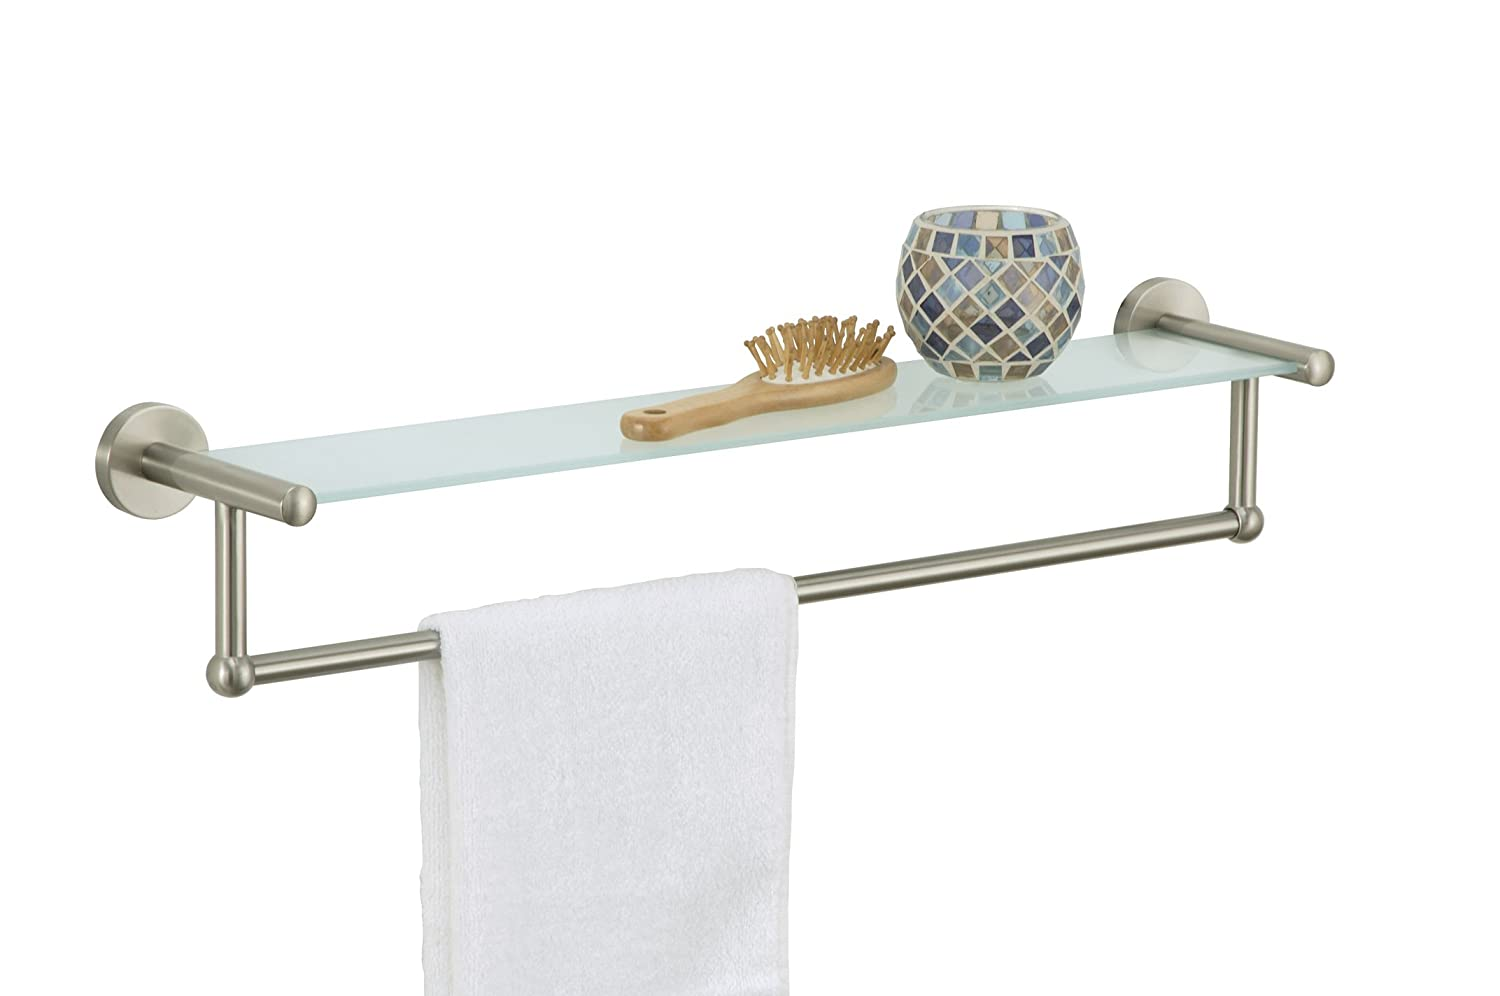 amazoncom organize it all satin nickel glass shelf with towel bar home kitchen - Bathroom Glass Shelves